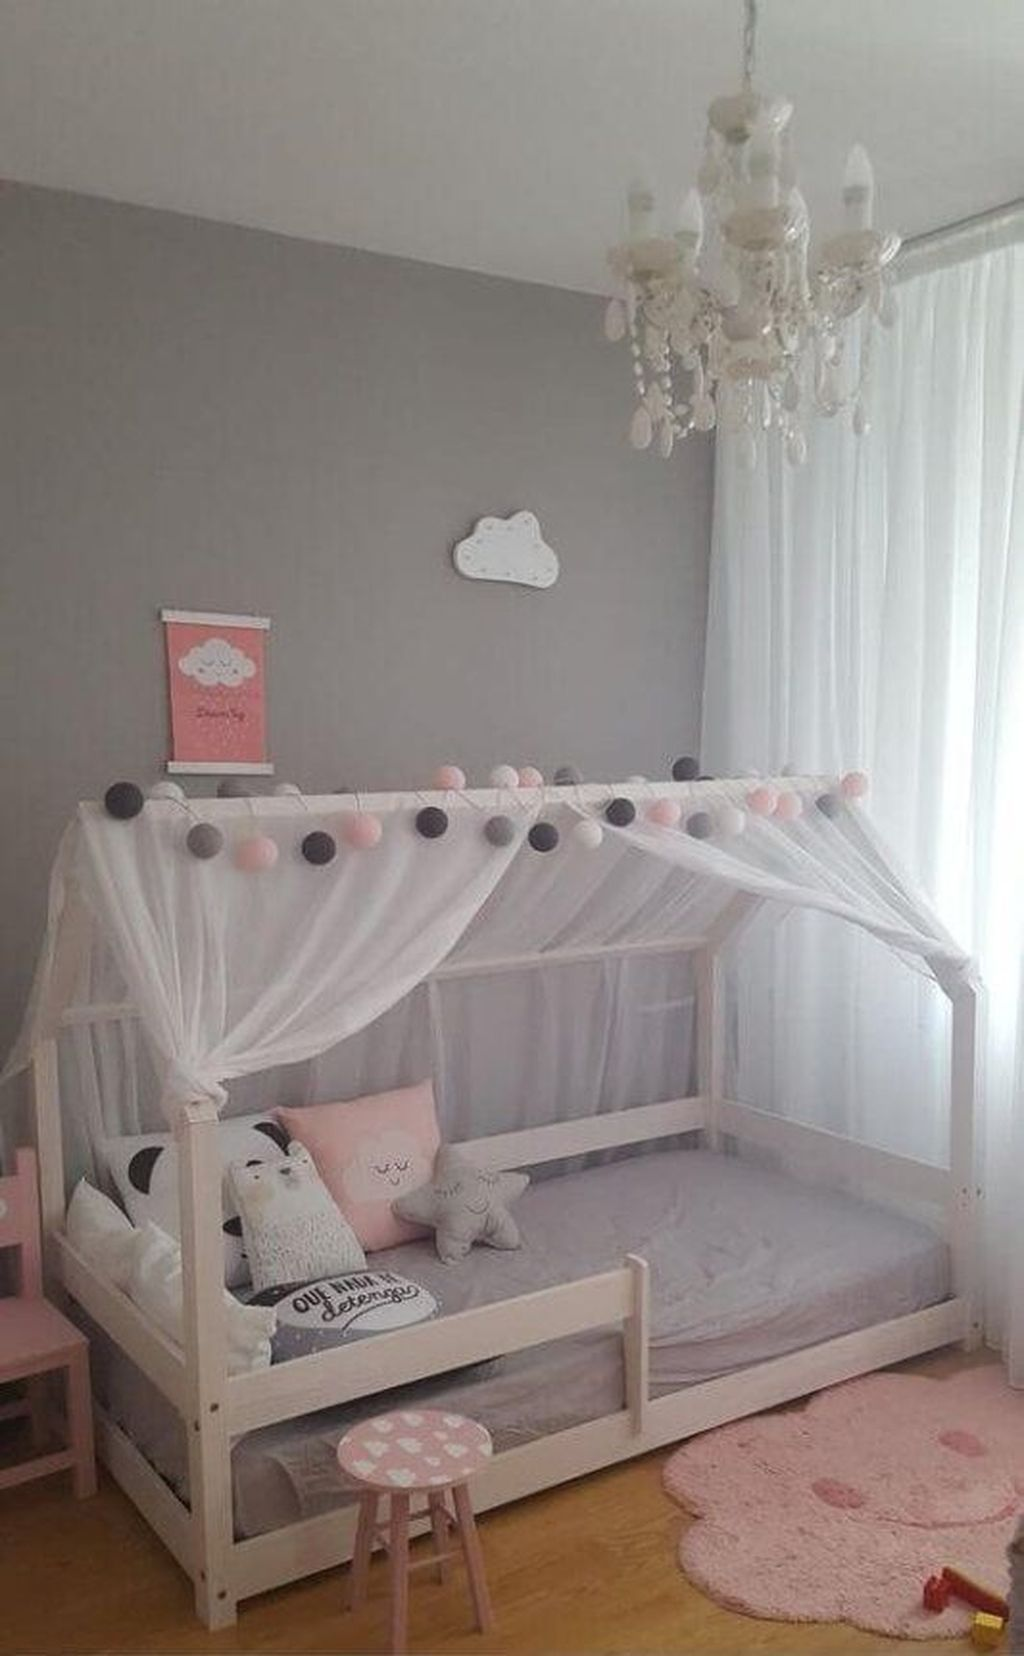 Cool 34 Charming Bedroom Décor Ideas For Baby Girl More At Https Homyfeed Com 2019 05 15 Mädchen Schlafzimmer Ideen Kinderschlafzimmer Schlafzimmer Mädchen